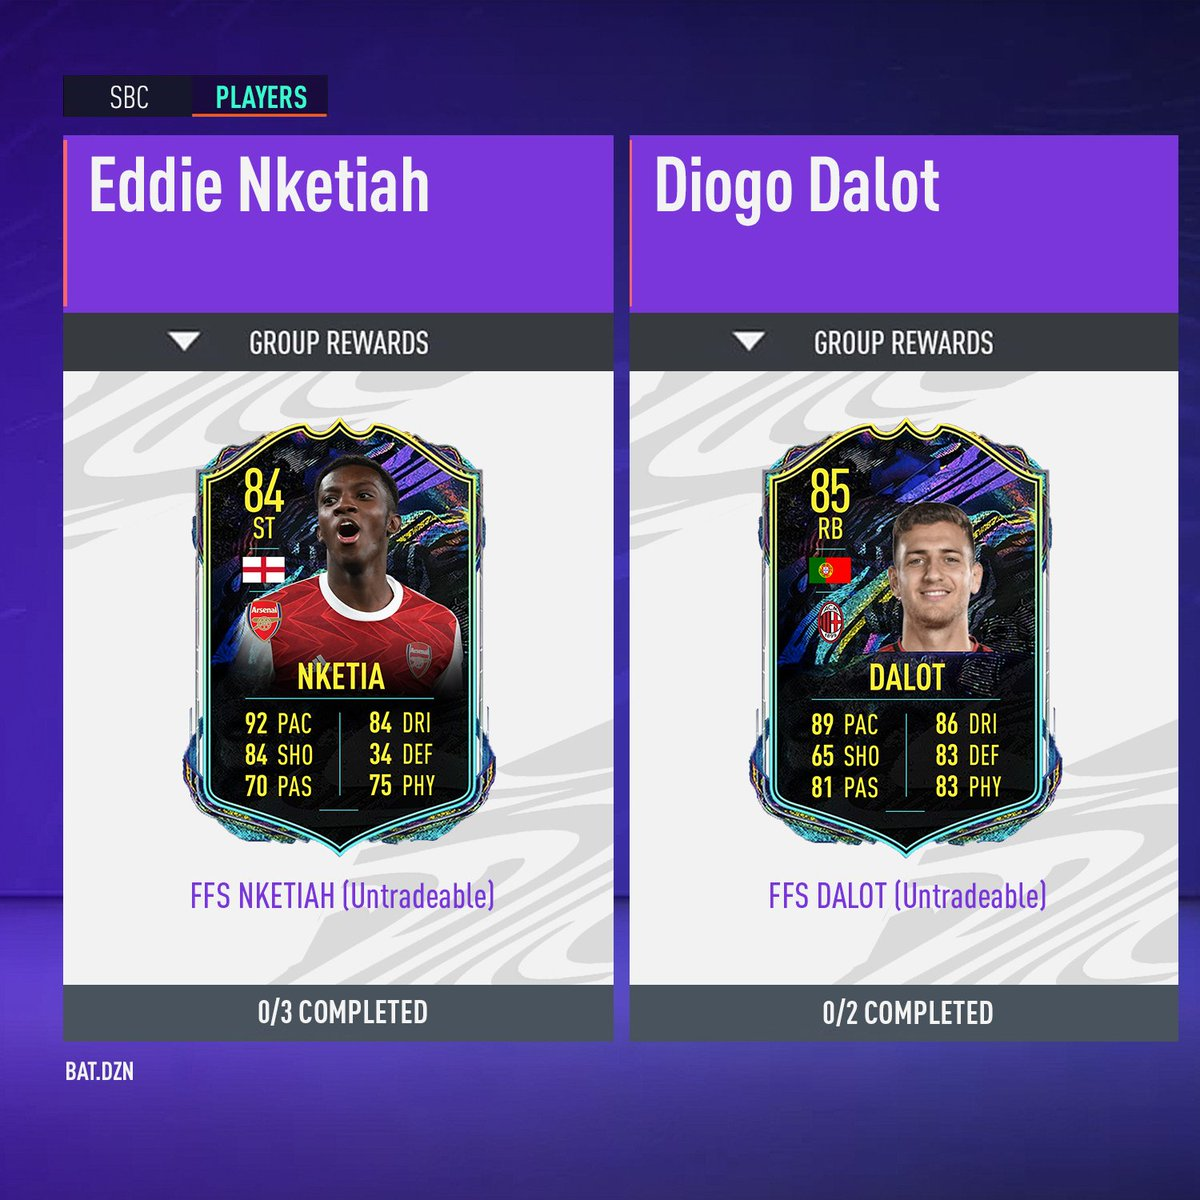 #FutureStarsCould we see these two players get #SBC's during the #FutureStars 🌟promo? ▪️ Eddie #Nketiah 🏴󠁧󠁢󠁥󠁮󠁧󠁿 Diogo #Dalot 🇵🇹 ▪️ Who else deserves a Future Stars card? Let me know in the comments below 👇